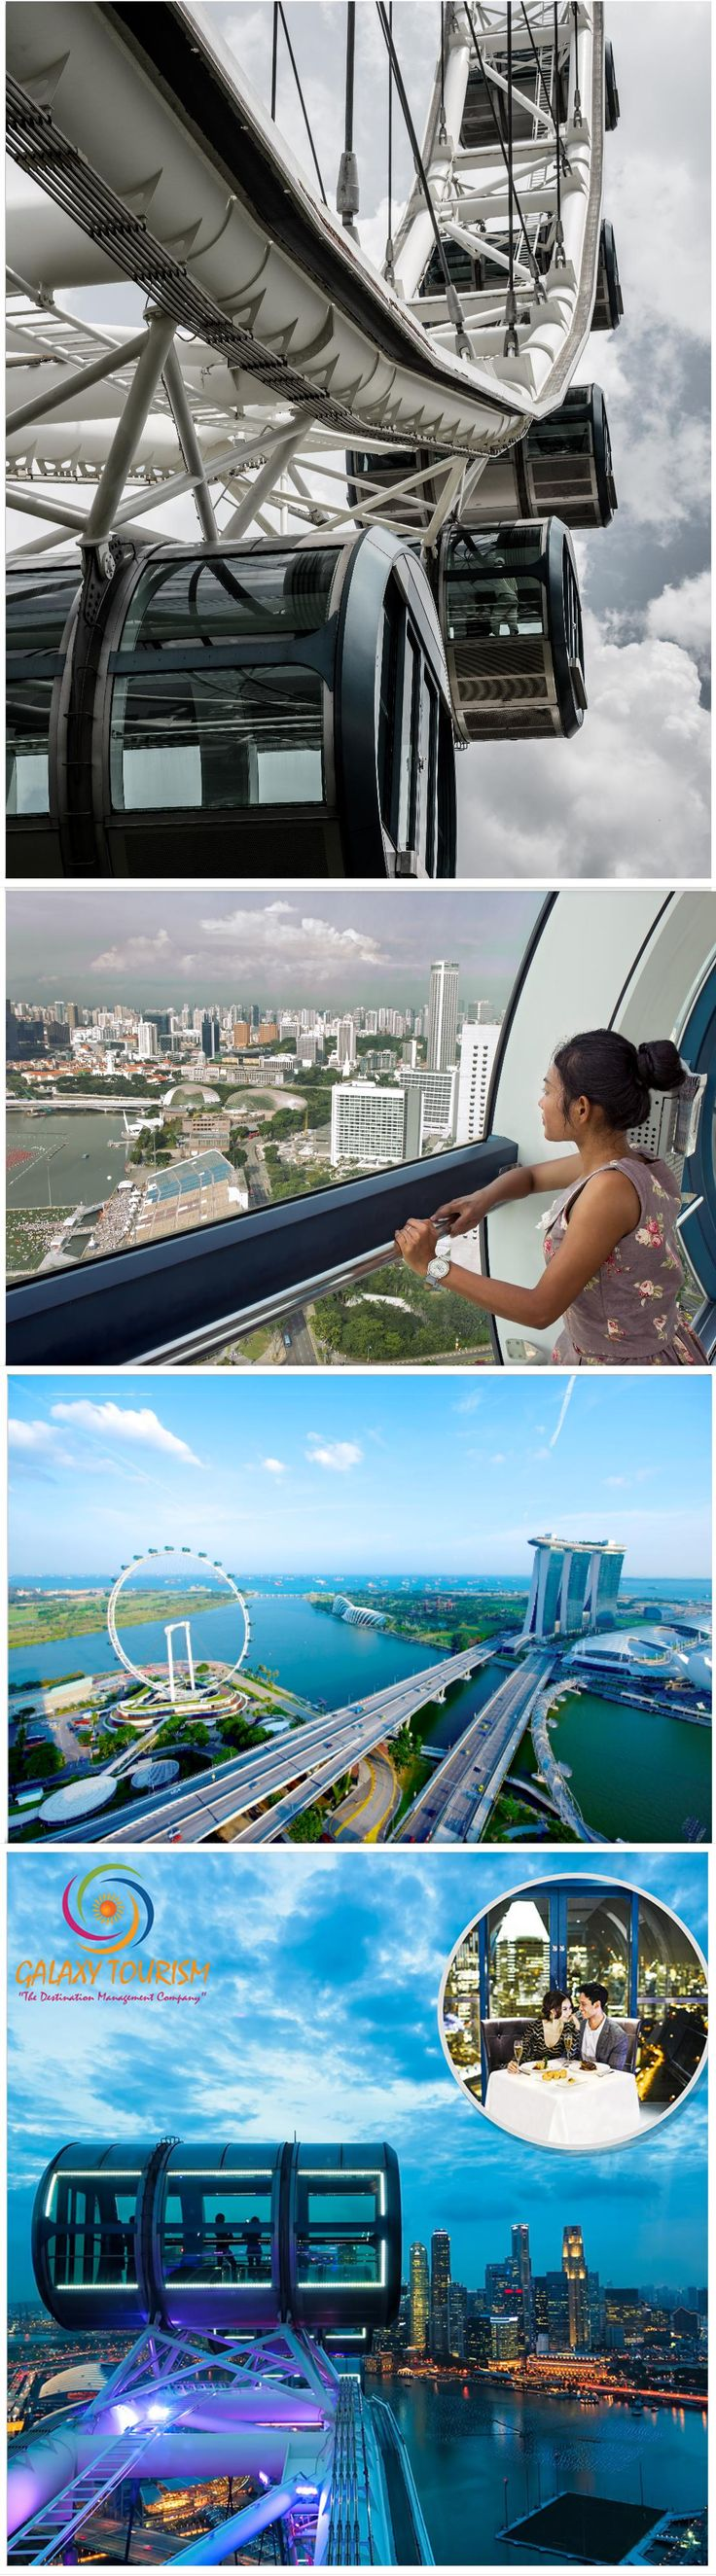 Singapore Flyer is one of the best attractions in world. Dinner on Singapore Flyer is also very popular and full of excitement. Book With Galaxy Tourism at best rate.... http://goo.gl/rNbY3Q #Singapore #SingaporeFlyer #SingaporeAttractions #SingaporeTour